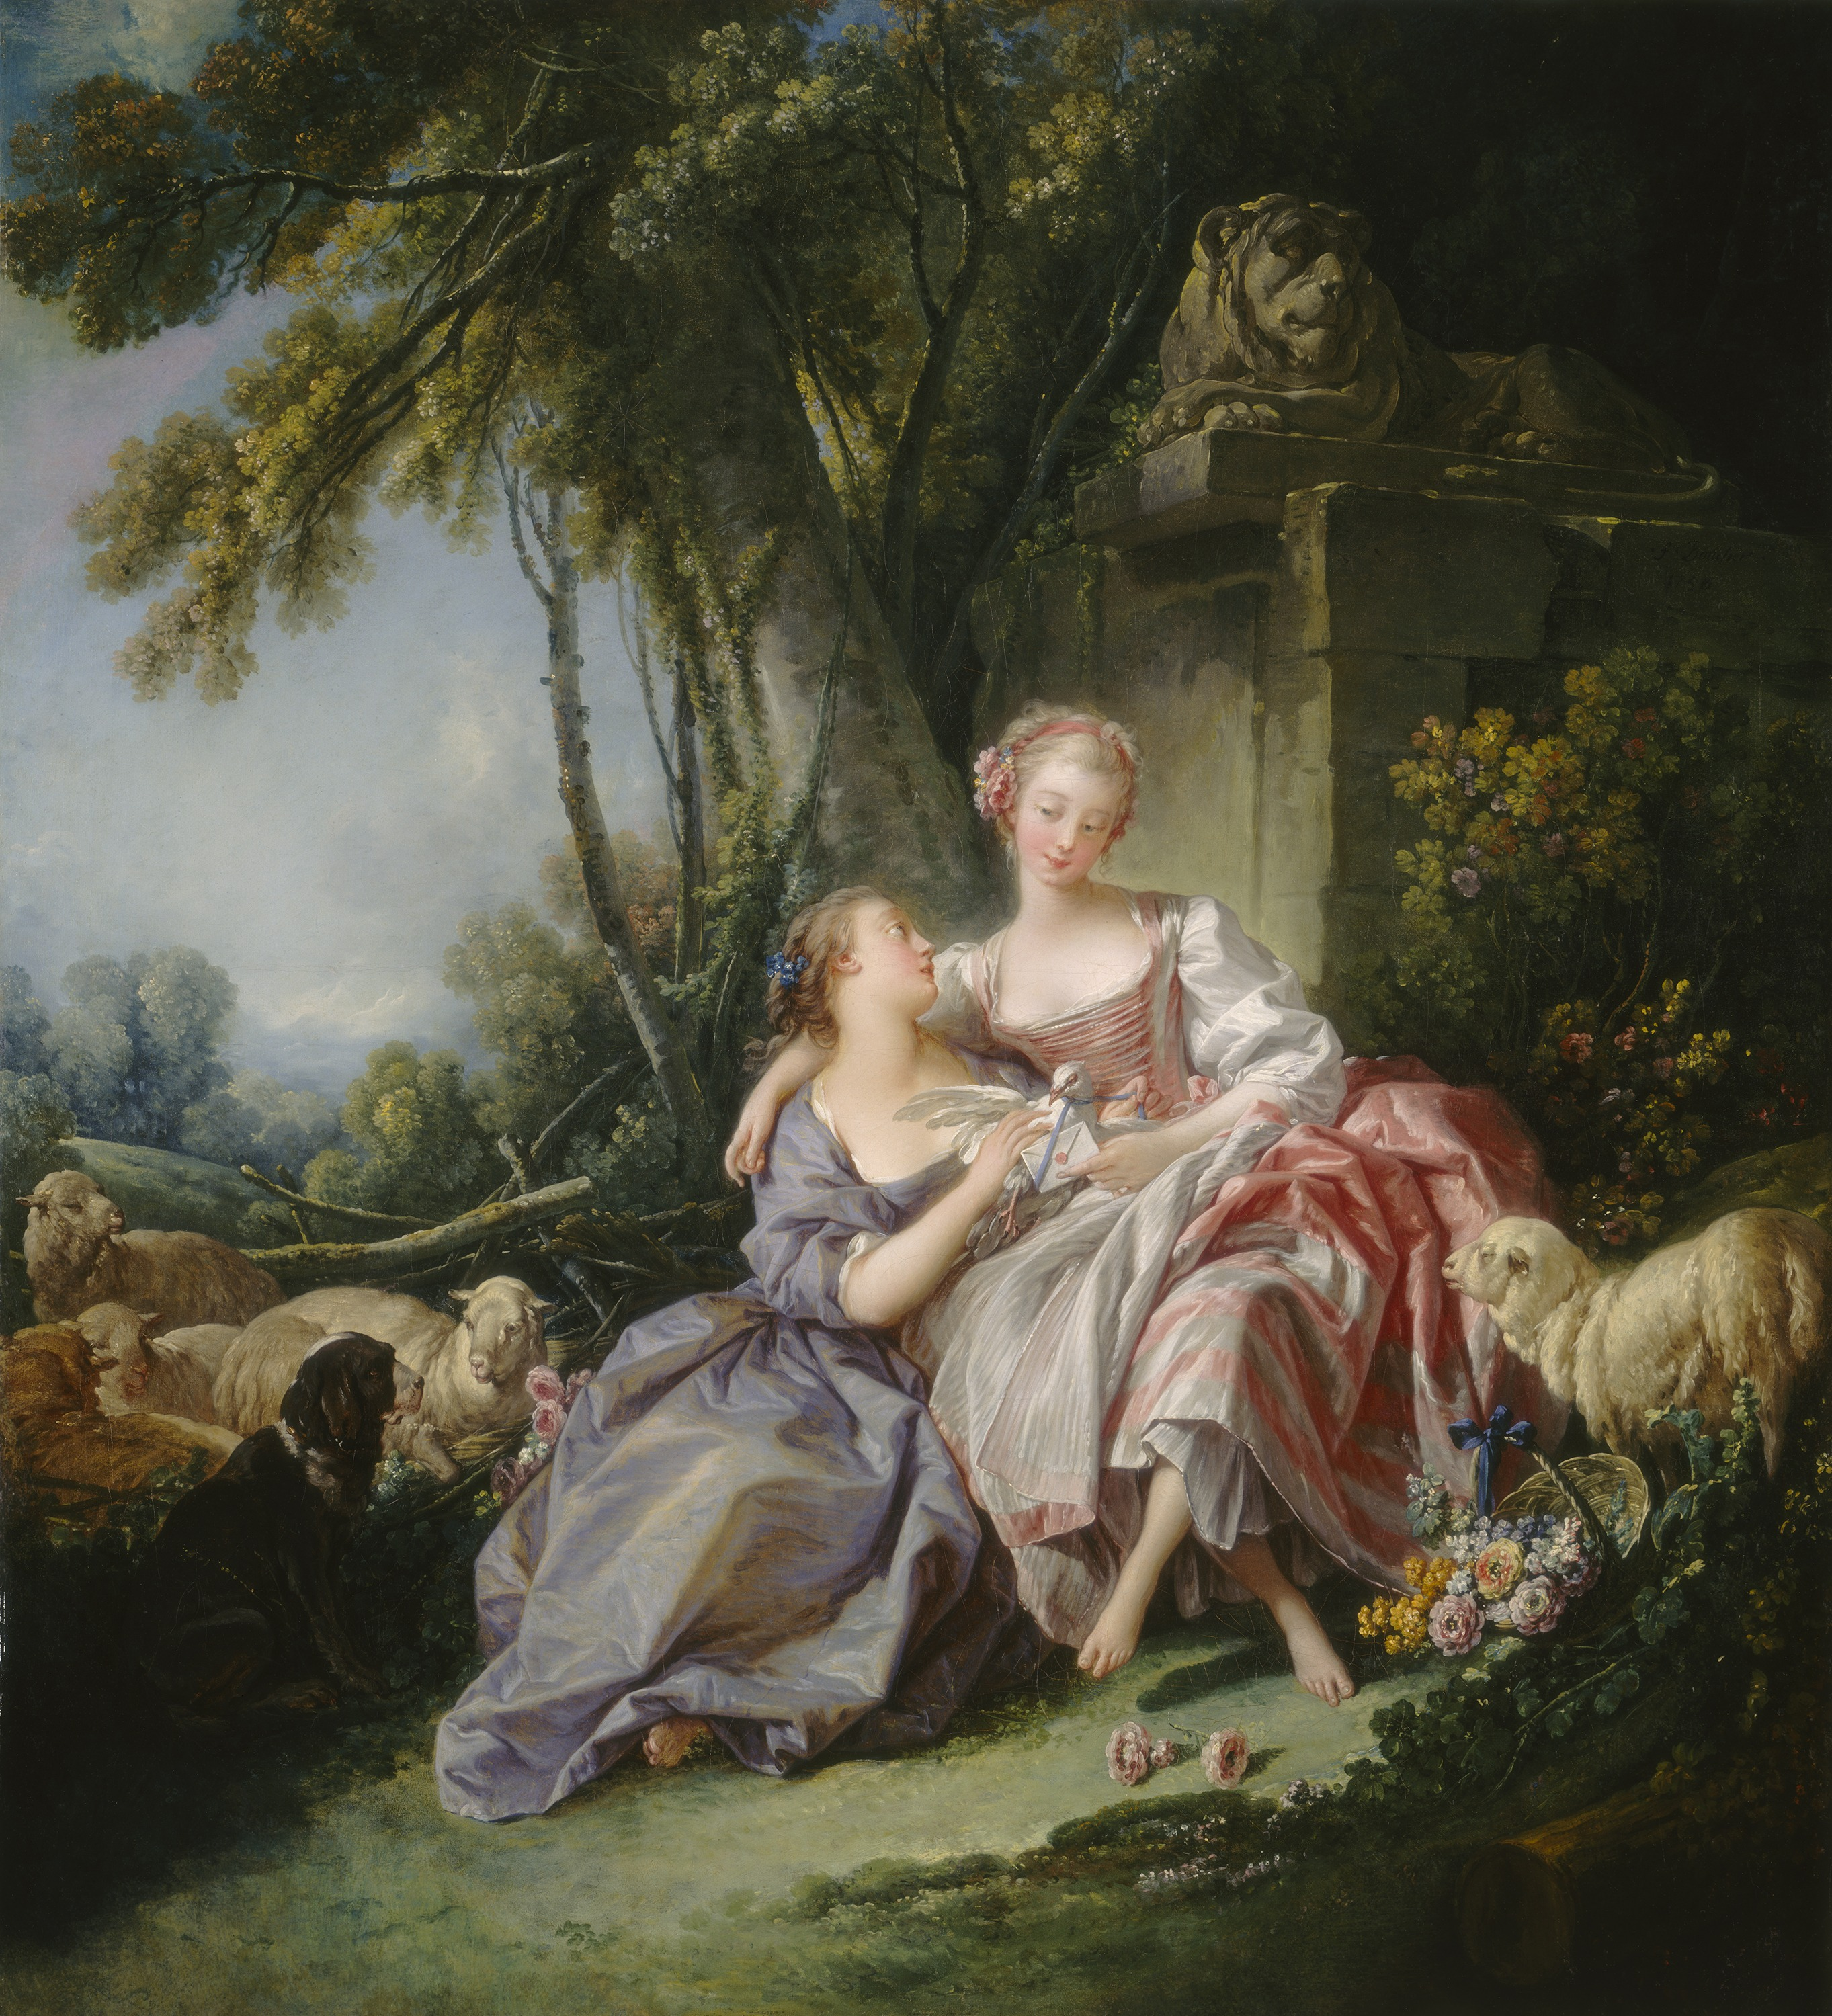 François Boucher whose skin tones and dream like gardens infuriated Diderot.